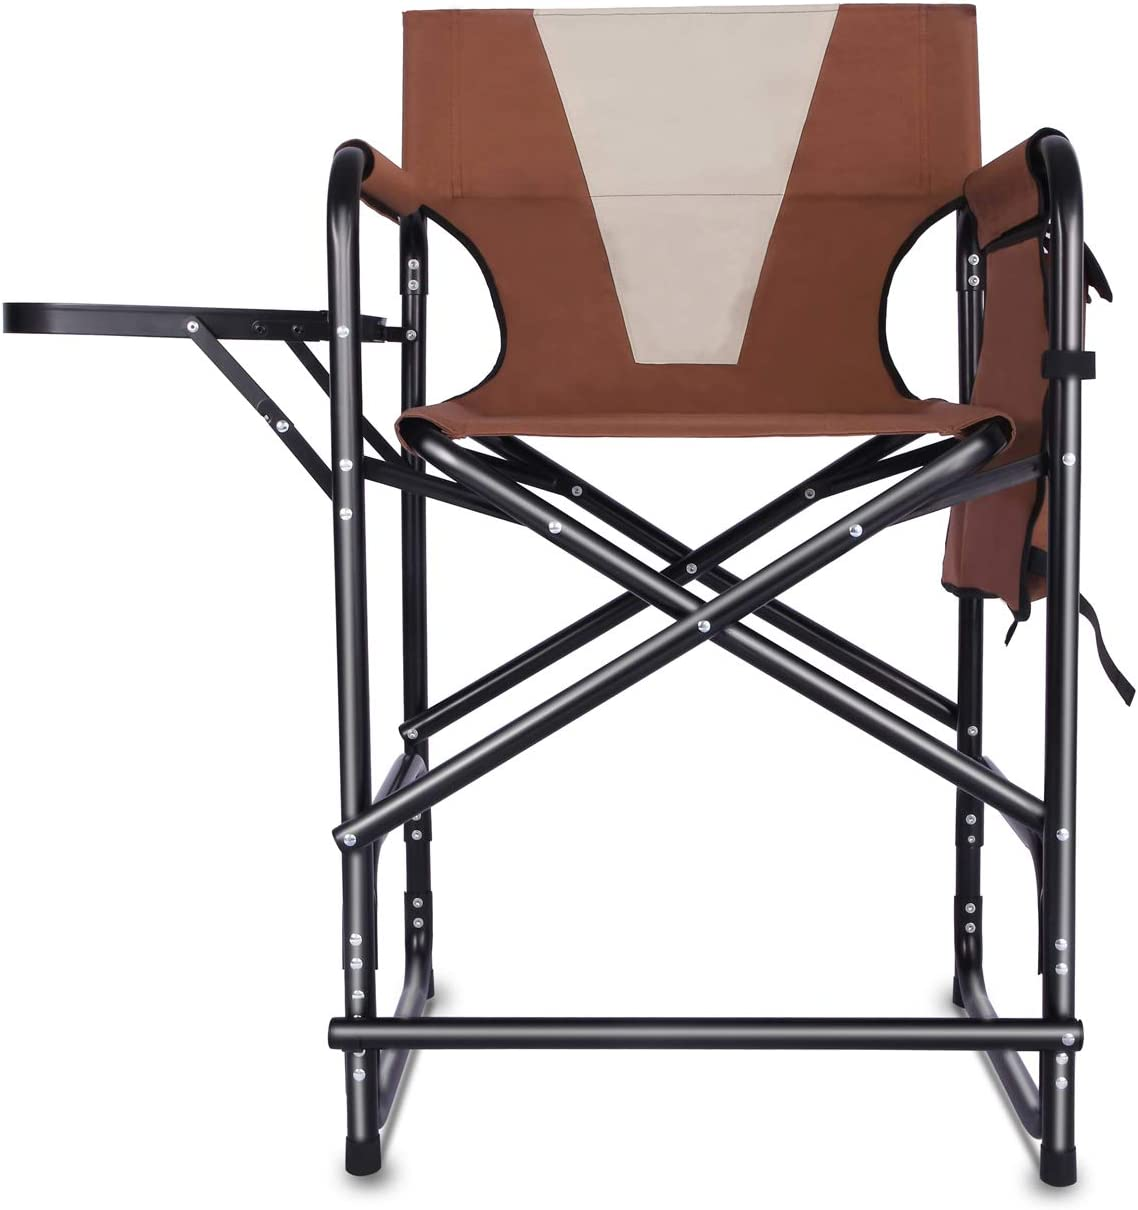 Tall Director s Chair Folding Portable Camping Chair, Makeup Artist Collapsible Chair with Side Table Storage Bag Footrest, Supports 300LBS